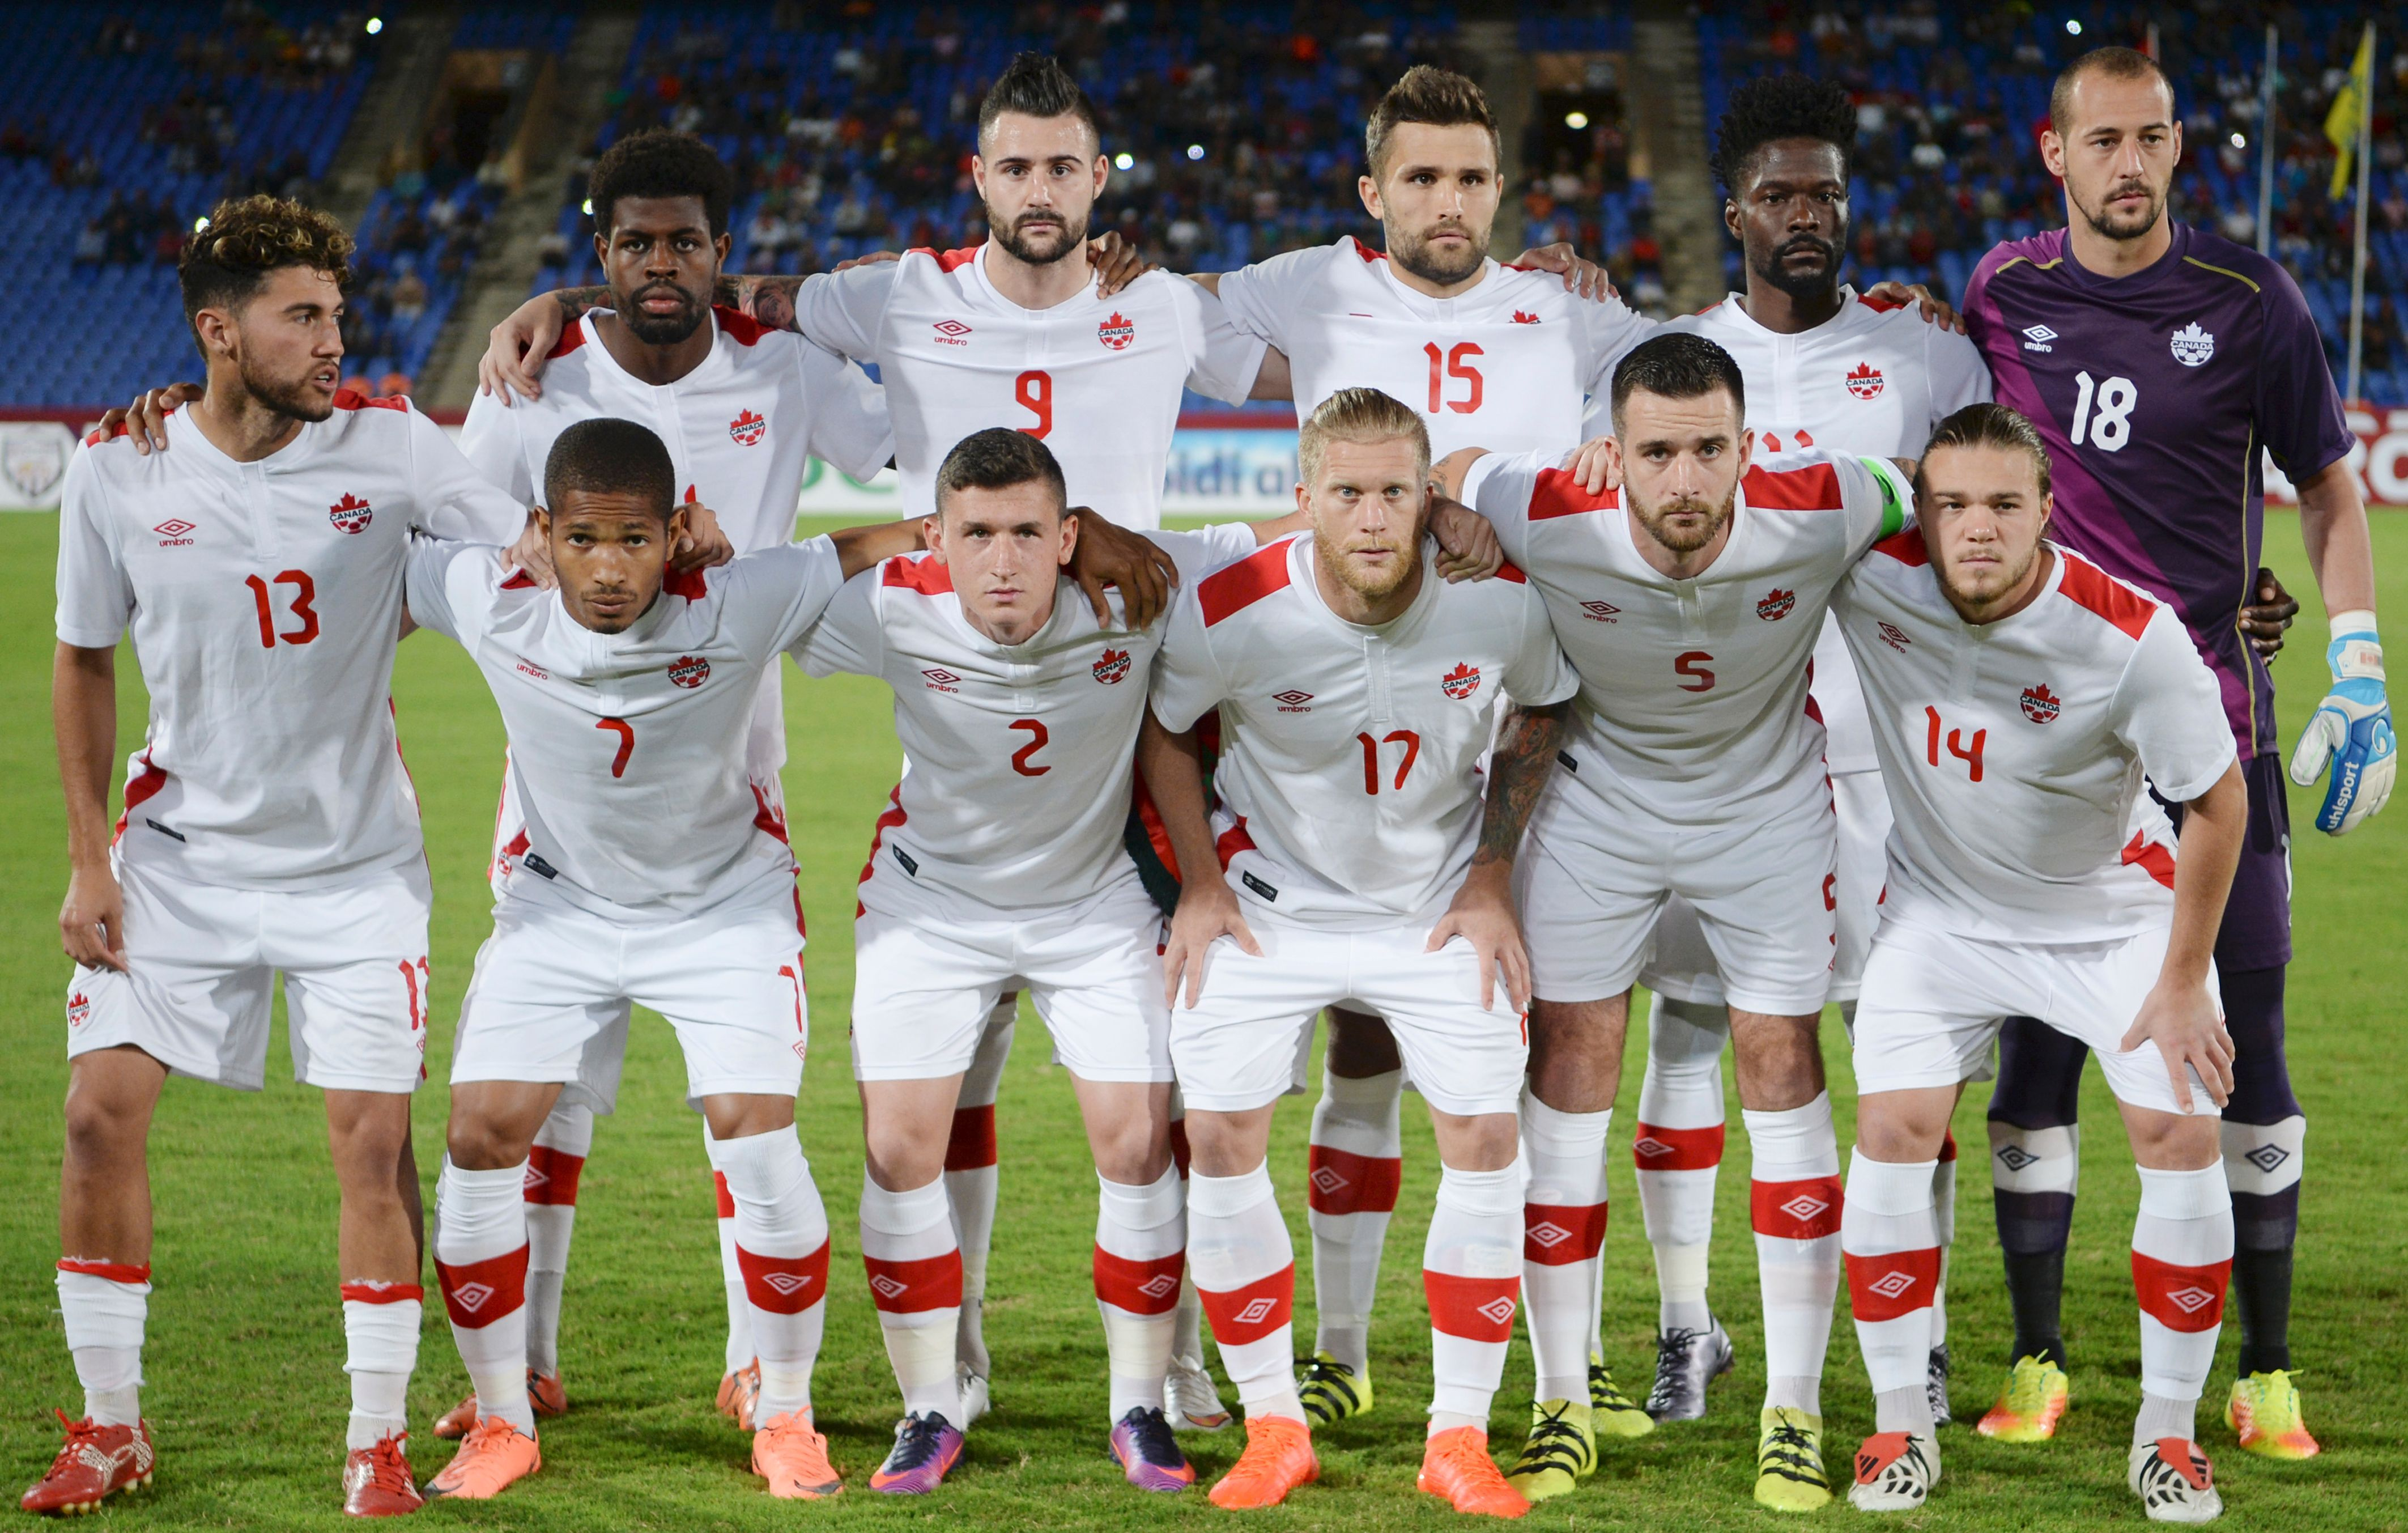 Canada's football national team players (front row from L) Jonathan Osorio, Simeon Jackson, Fraser Aird, Marcel De Jong, David Edgar, Samuel Piette (back row from L) Manjrekar James, Marcus Haber, Adam Straith, Tosaint Ricketts, Milan Borjan pose for a group photo prior to their friendly match against Morocco at the Marrakech Grand Stadium in Rabat on October 11, 2016. / AFP / FADEL SENNA        (Photo credit should read FADEL SENNA/AFP/Getty Images)